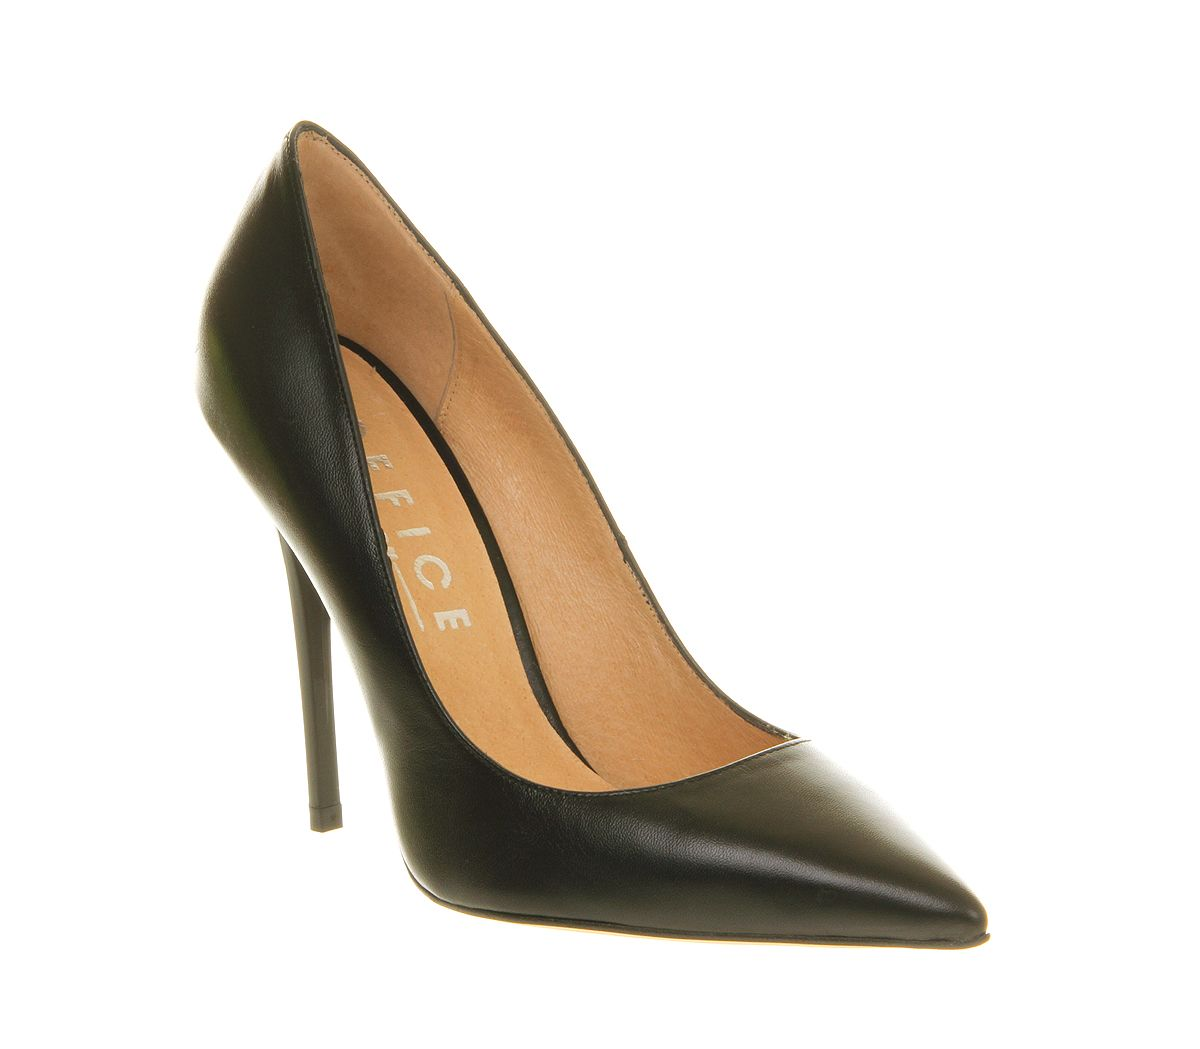 office on top pointed court shoes in black lyst